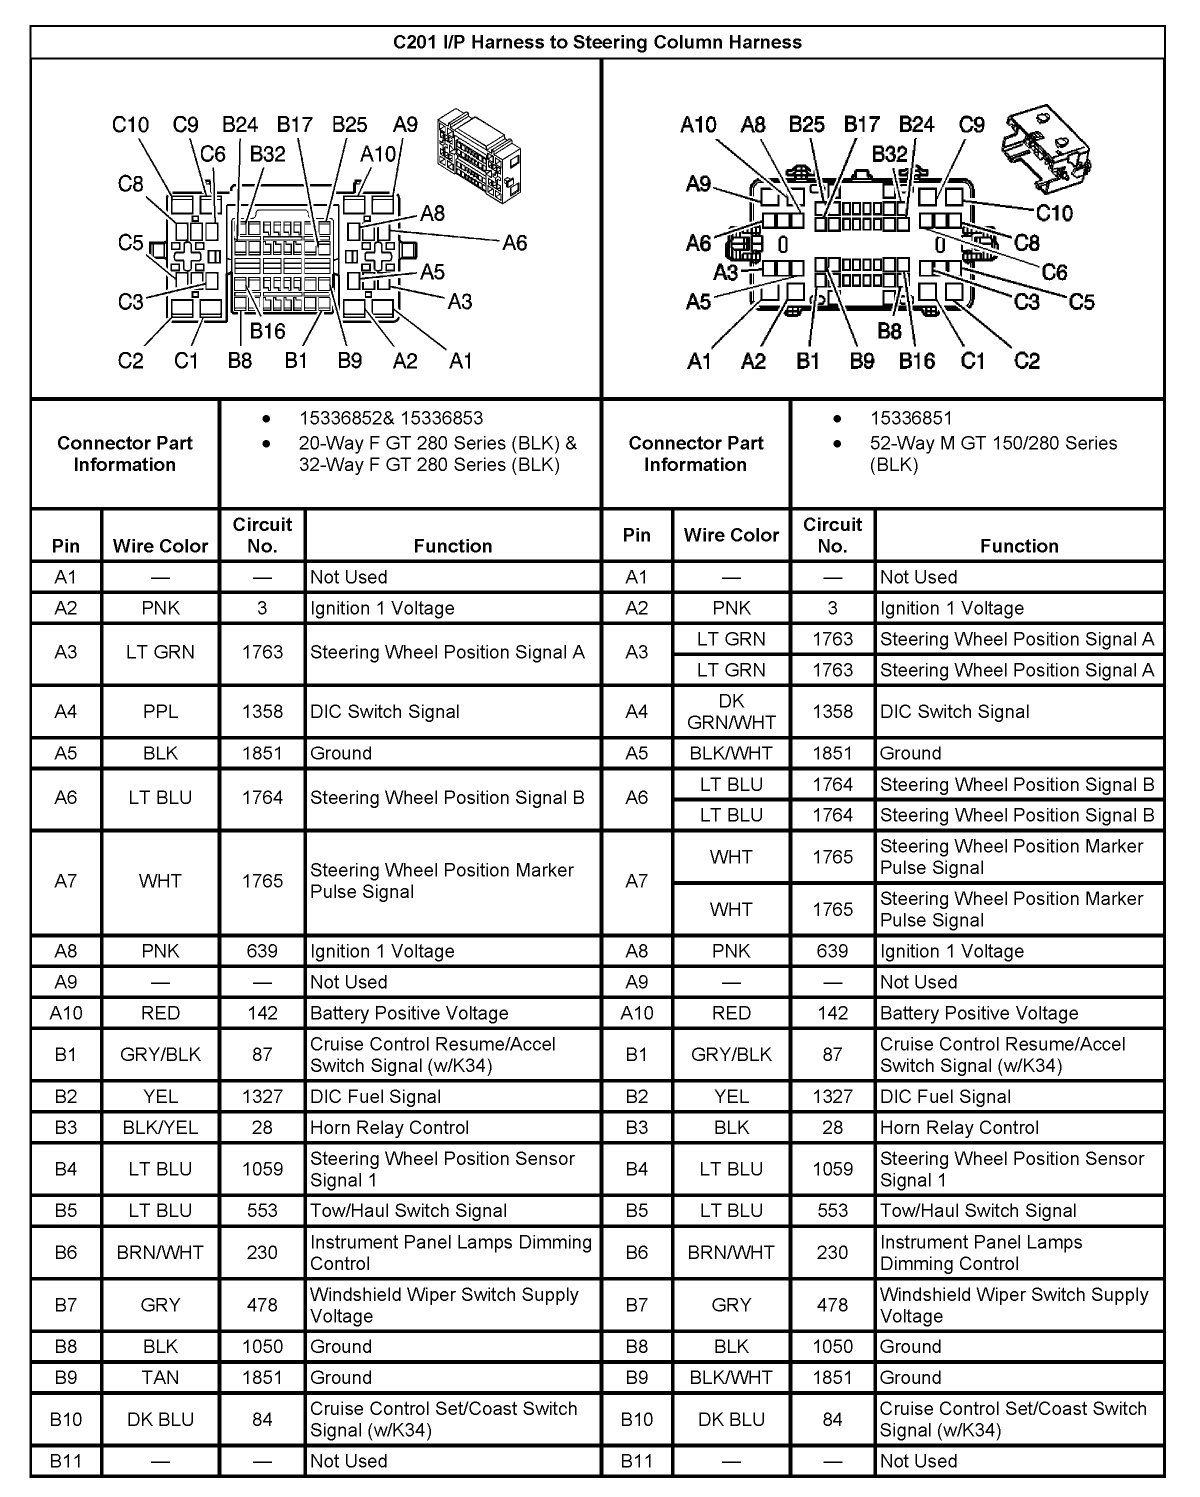 2004 gmc truck fuse diagrams 2004 gmc sierra radio wiring diagram | free wiring diagram 2004 gmc truck electrical wiring diagrams